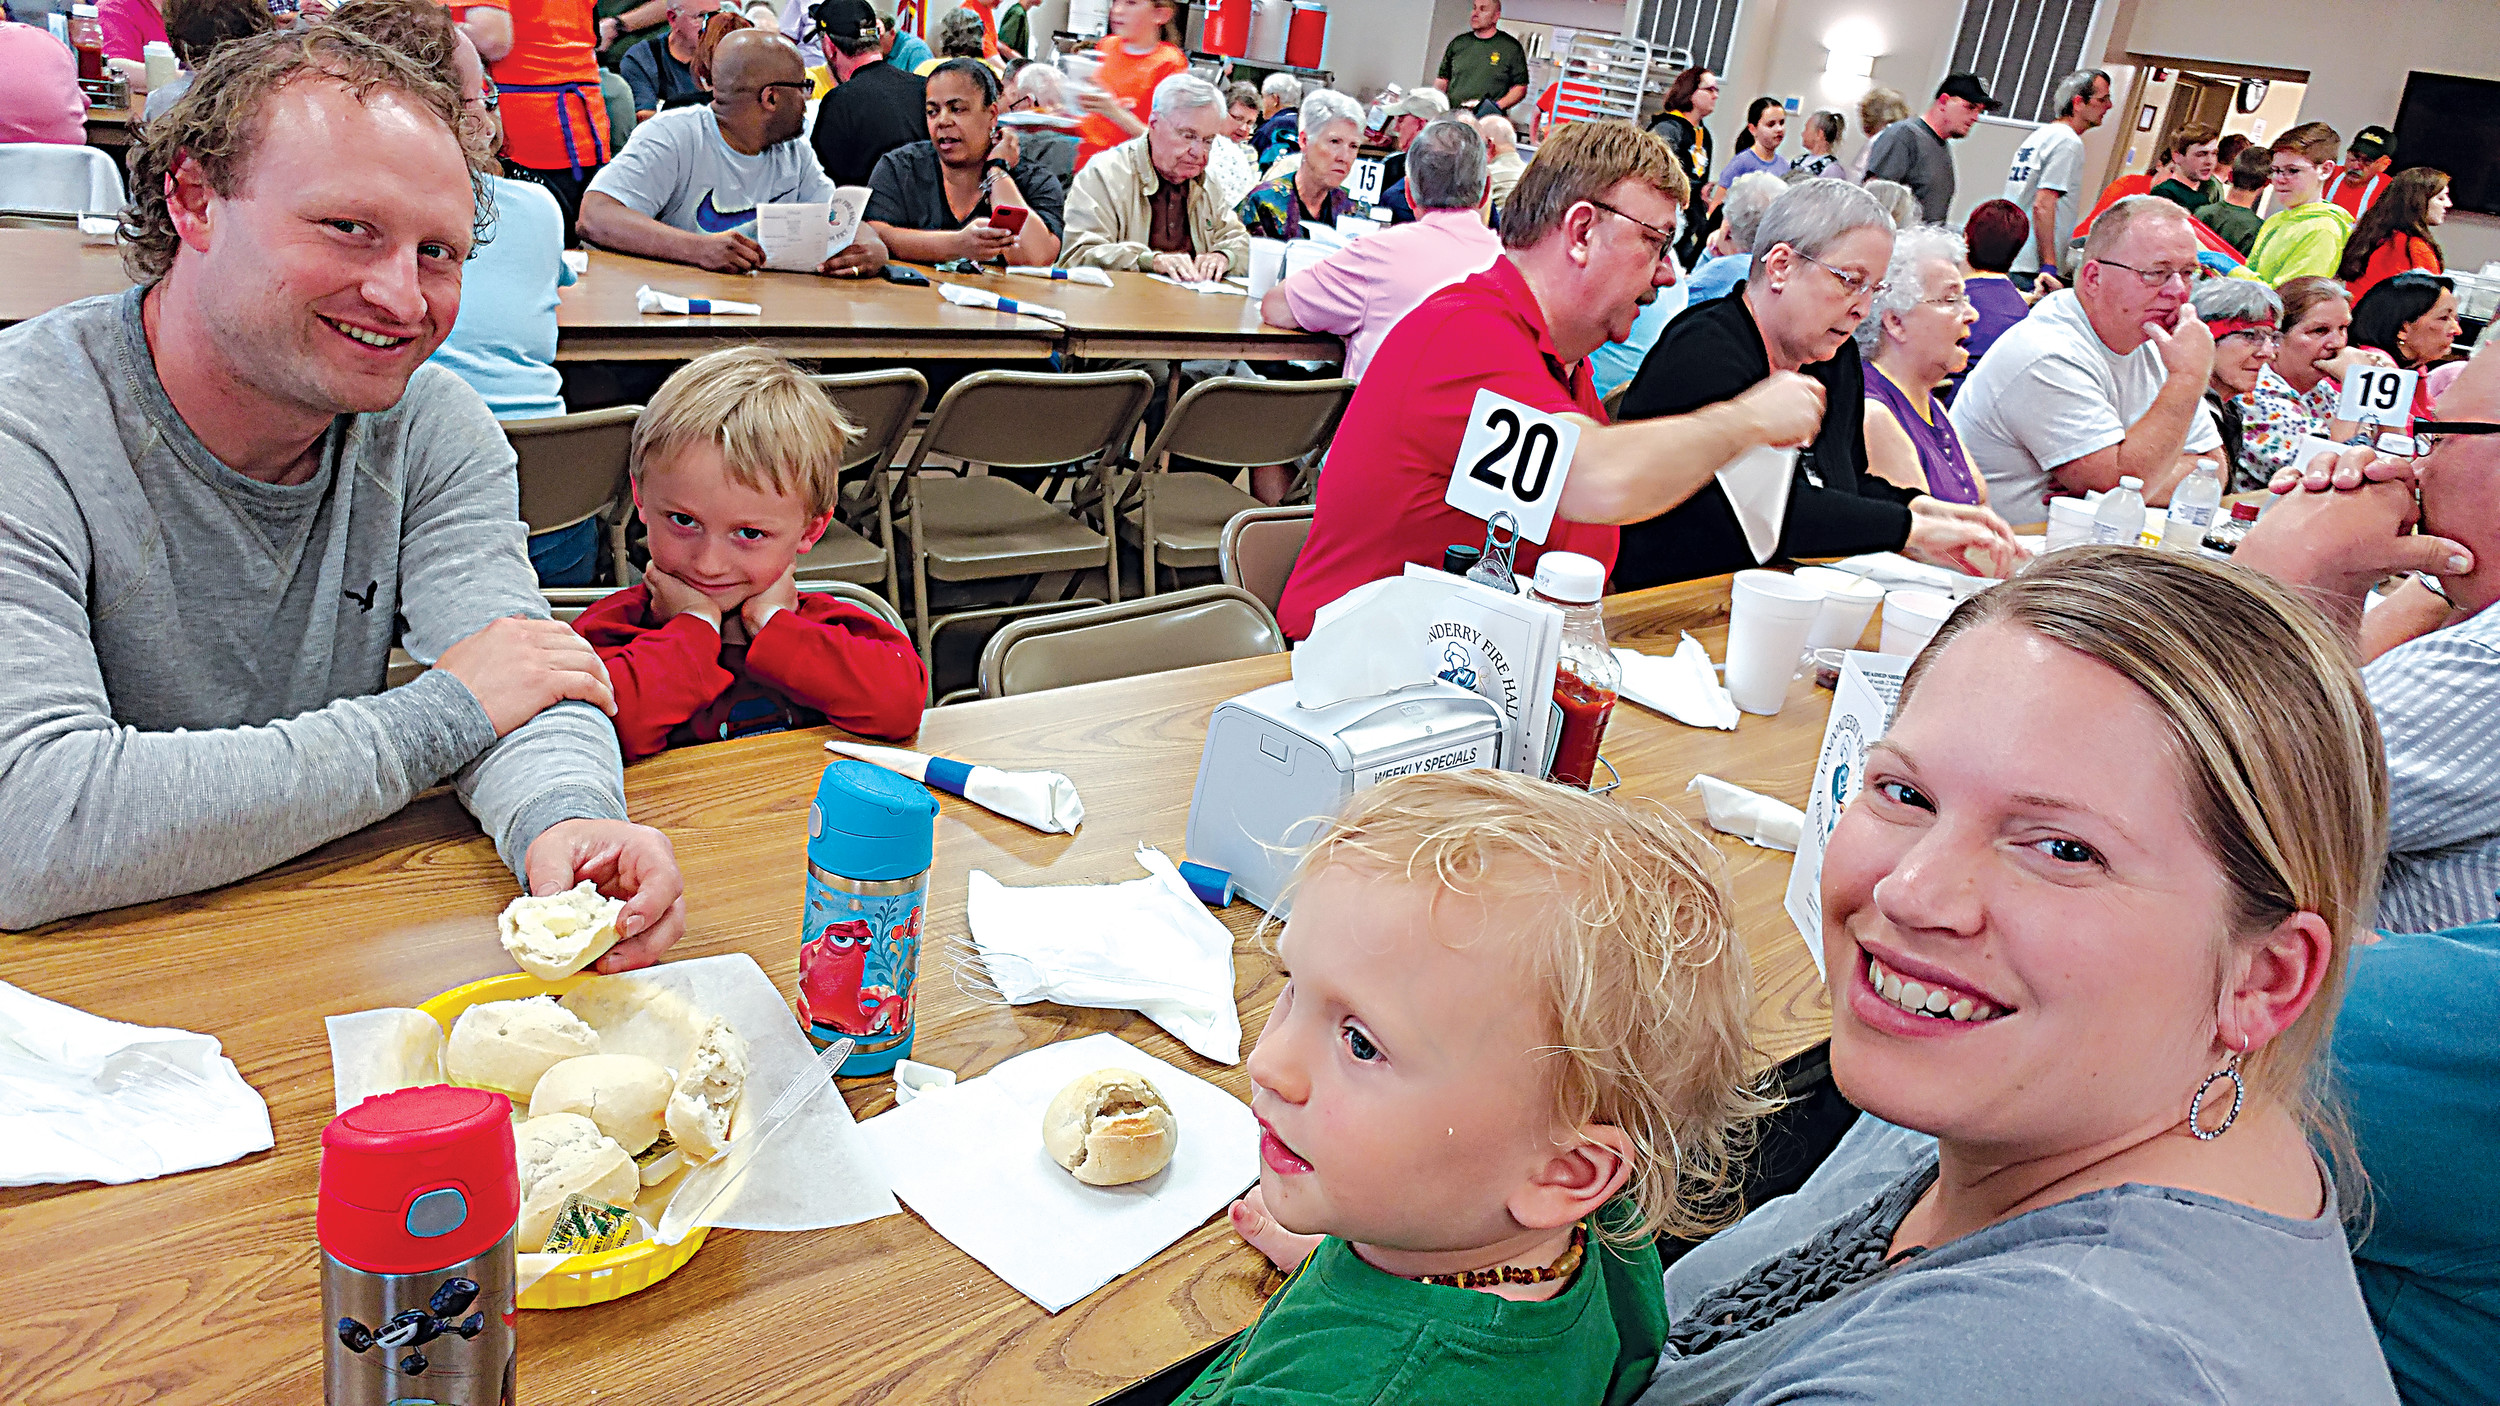 The Diem family, consisting of Randy, Brantley, 4, Rachel, and Kiptyn, 2 were out sampling the various seafood dishes at the fish fry.